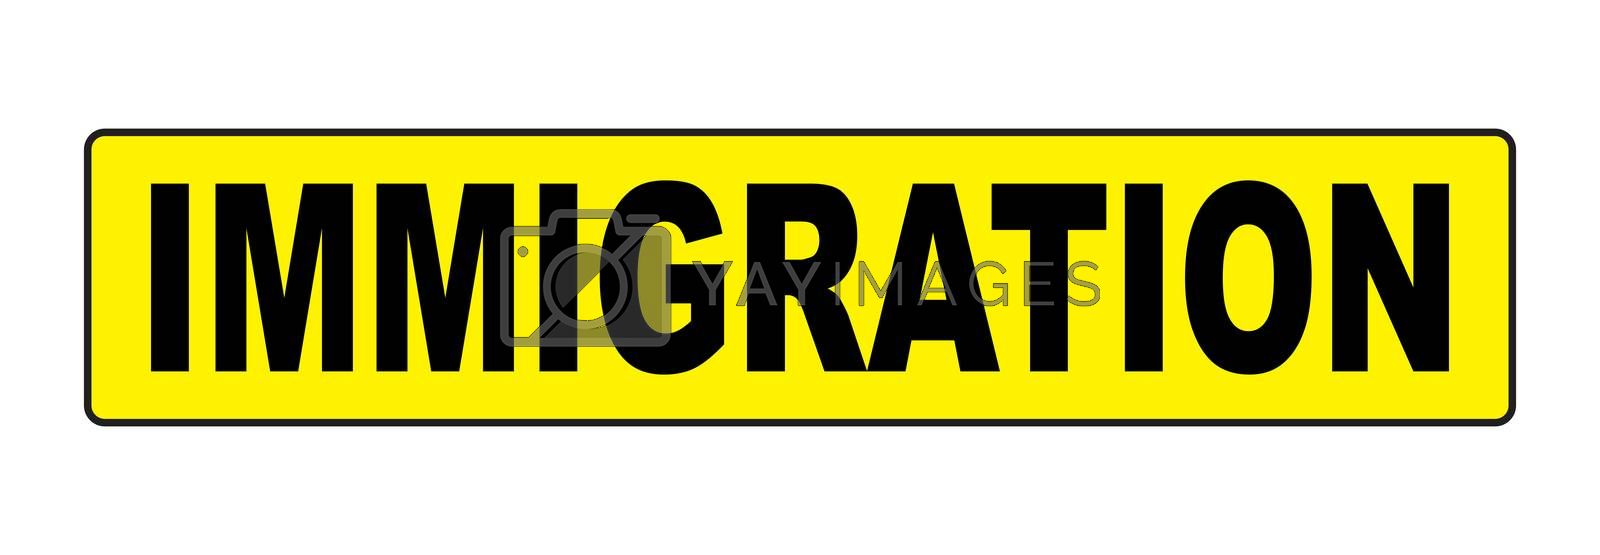 Bright yellow immigration sign over a white background